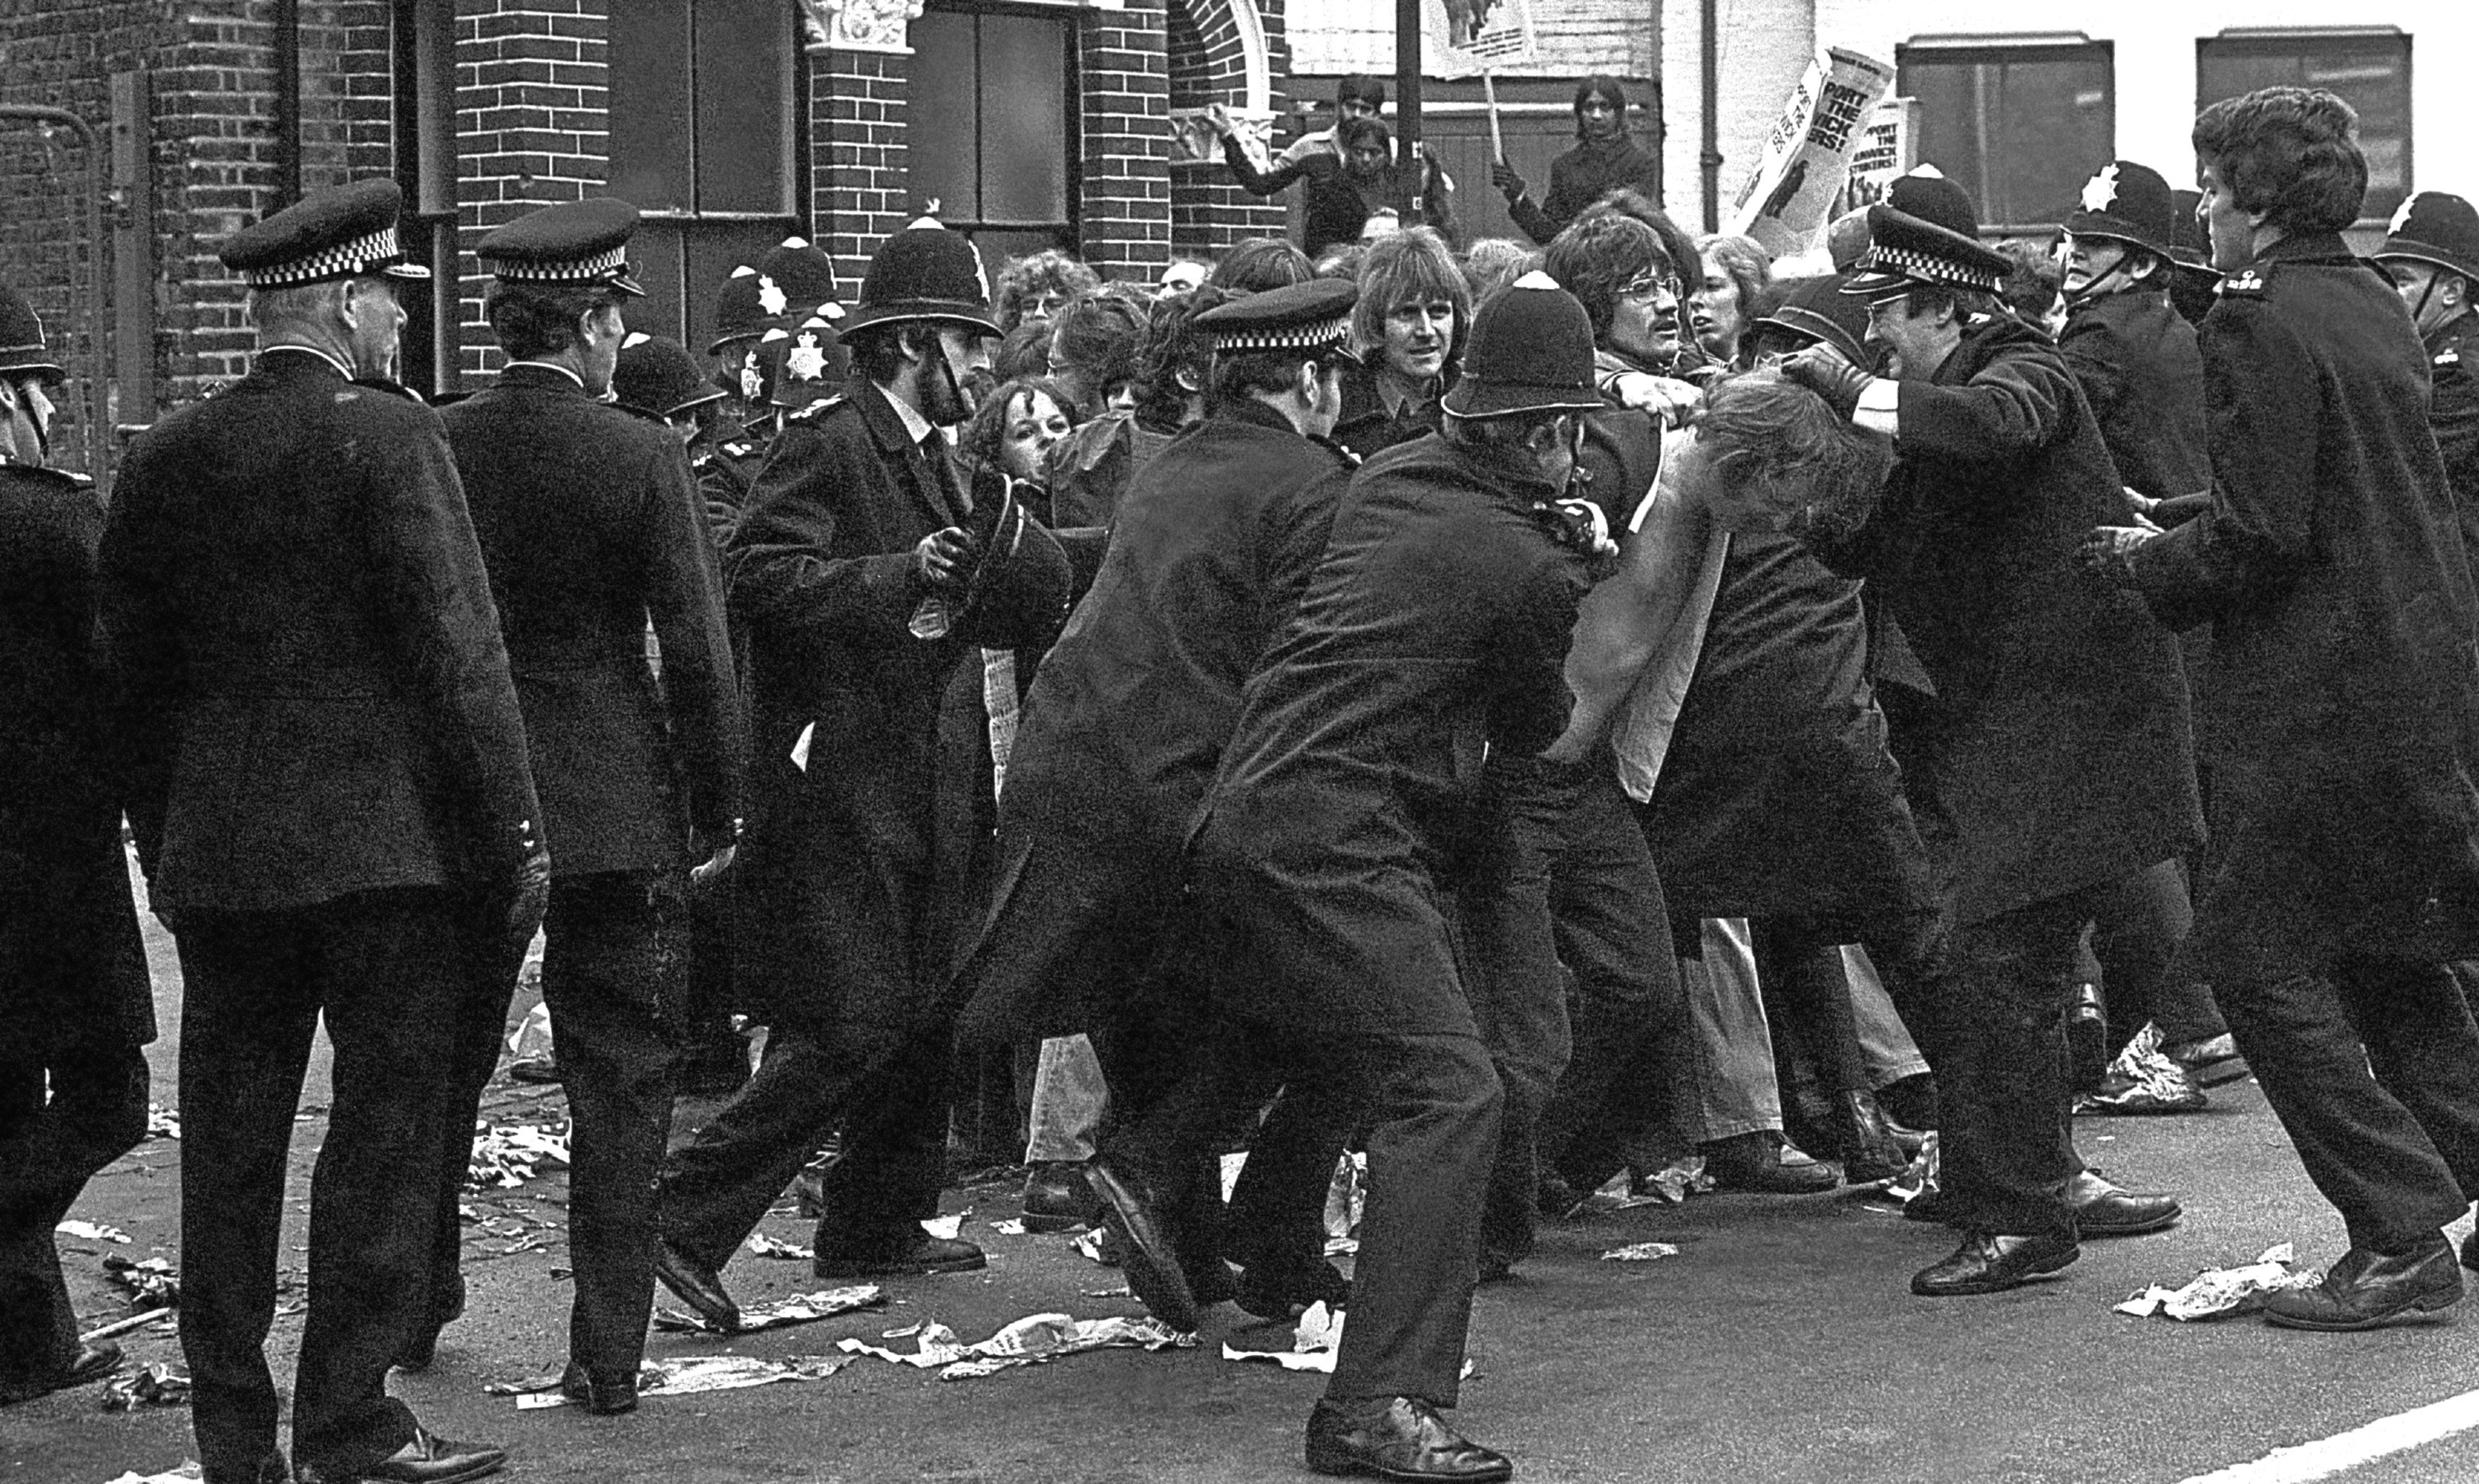 Police restrain pickets at the Grunwick factory in London in June 1977.